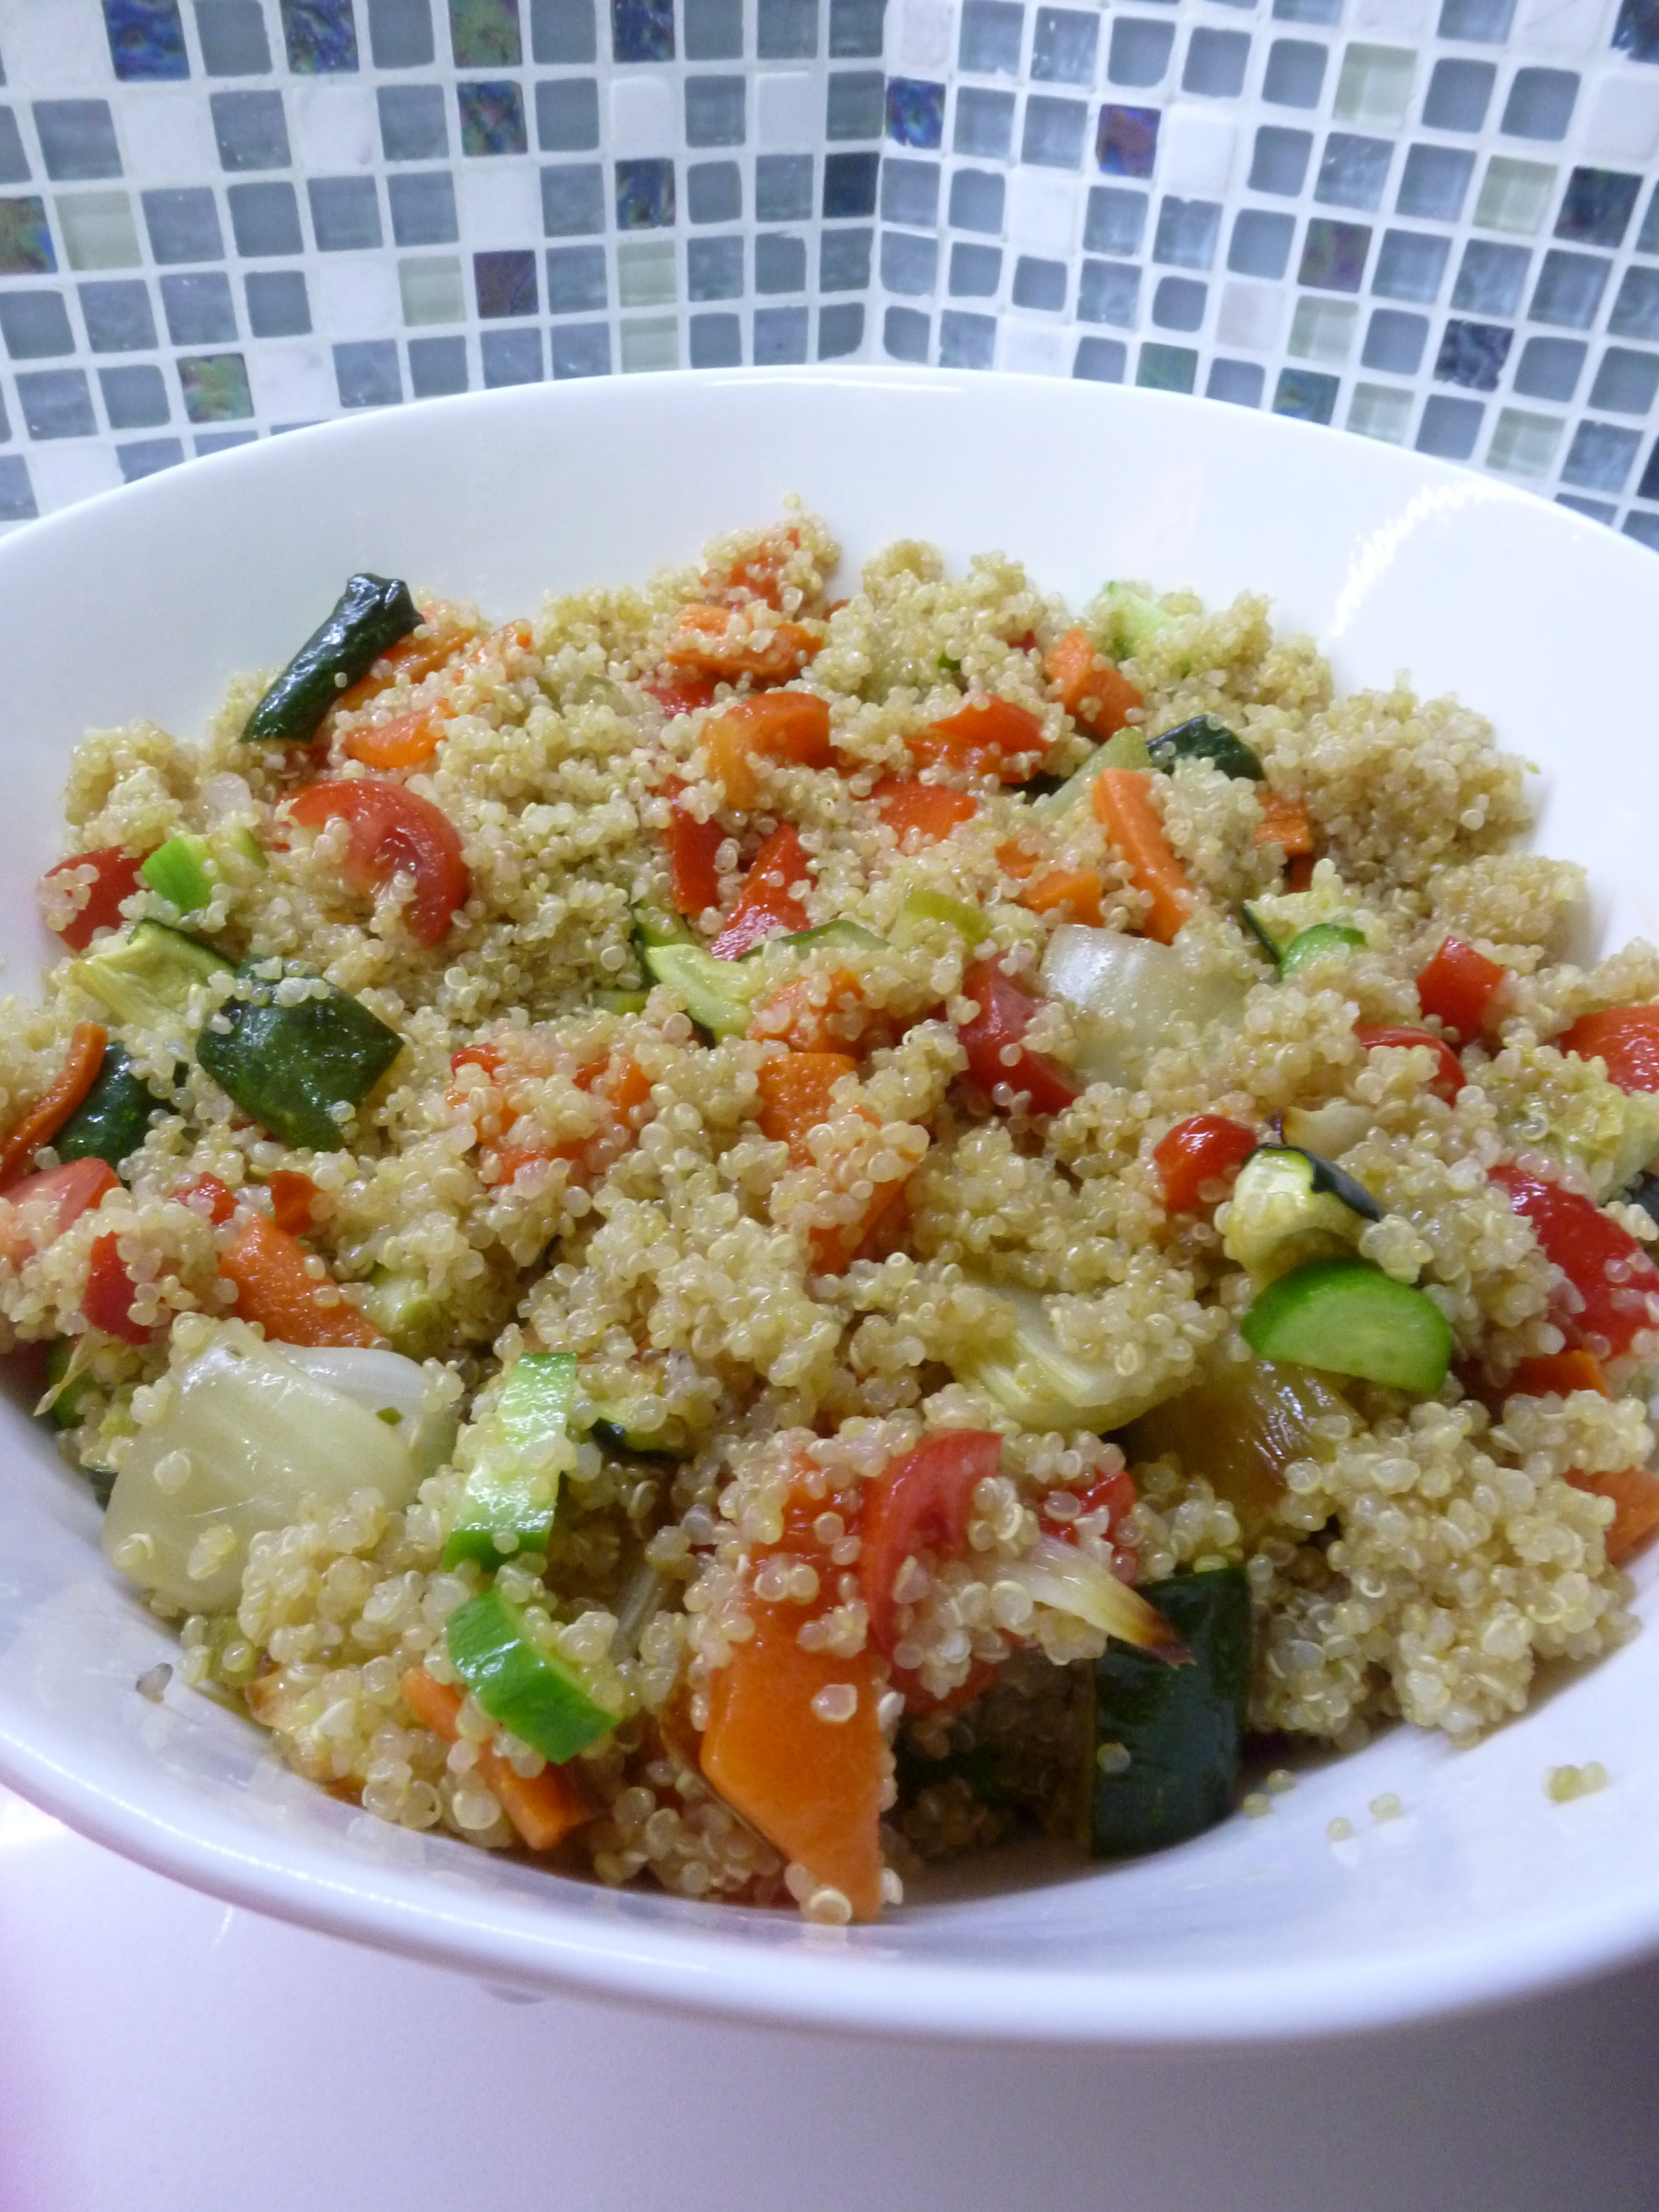 Quinoa Salad Dressing  Roasted Ve able and Quinoa Salad with Citrus Dressing